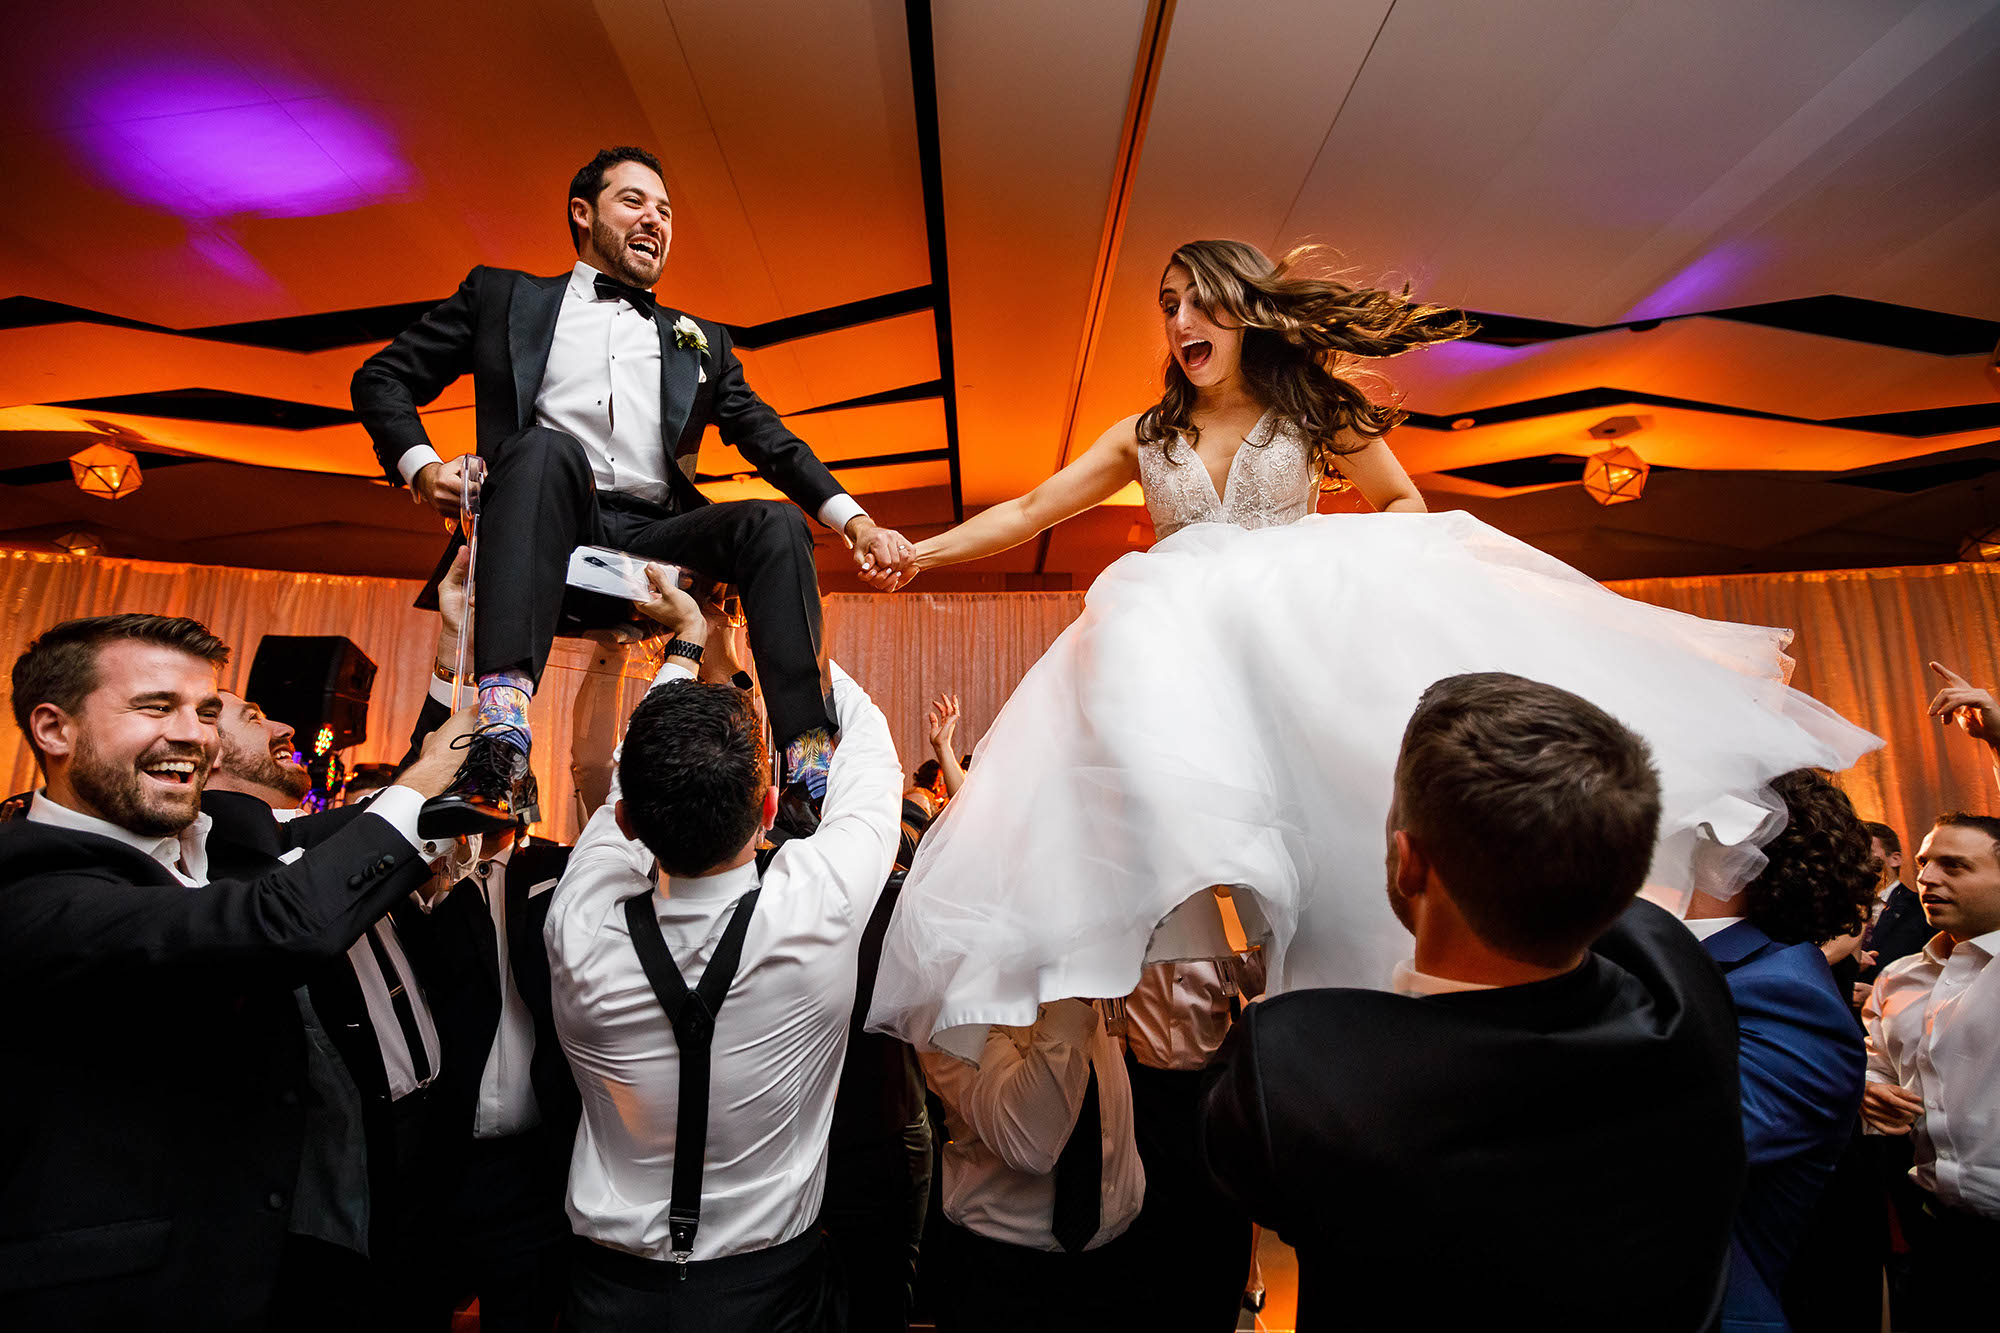 A Jewish bride and groom both lifted up on chairs laughing during the horah dance at the wedding at the Hilton Cleveland Downtown in Cleveland, Ohio.